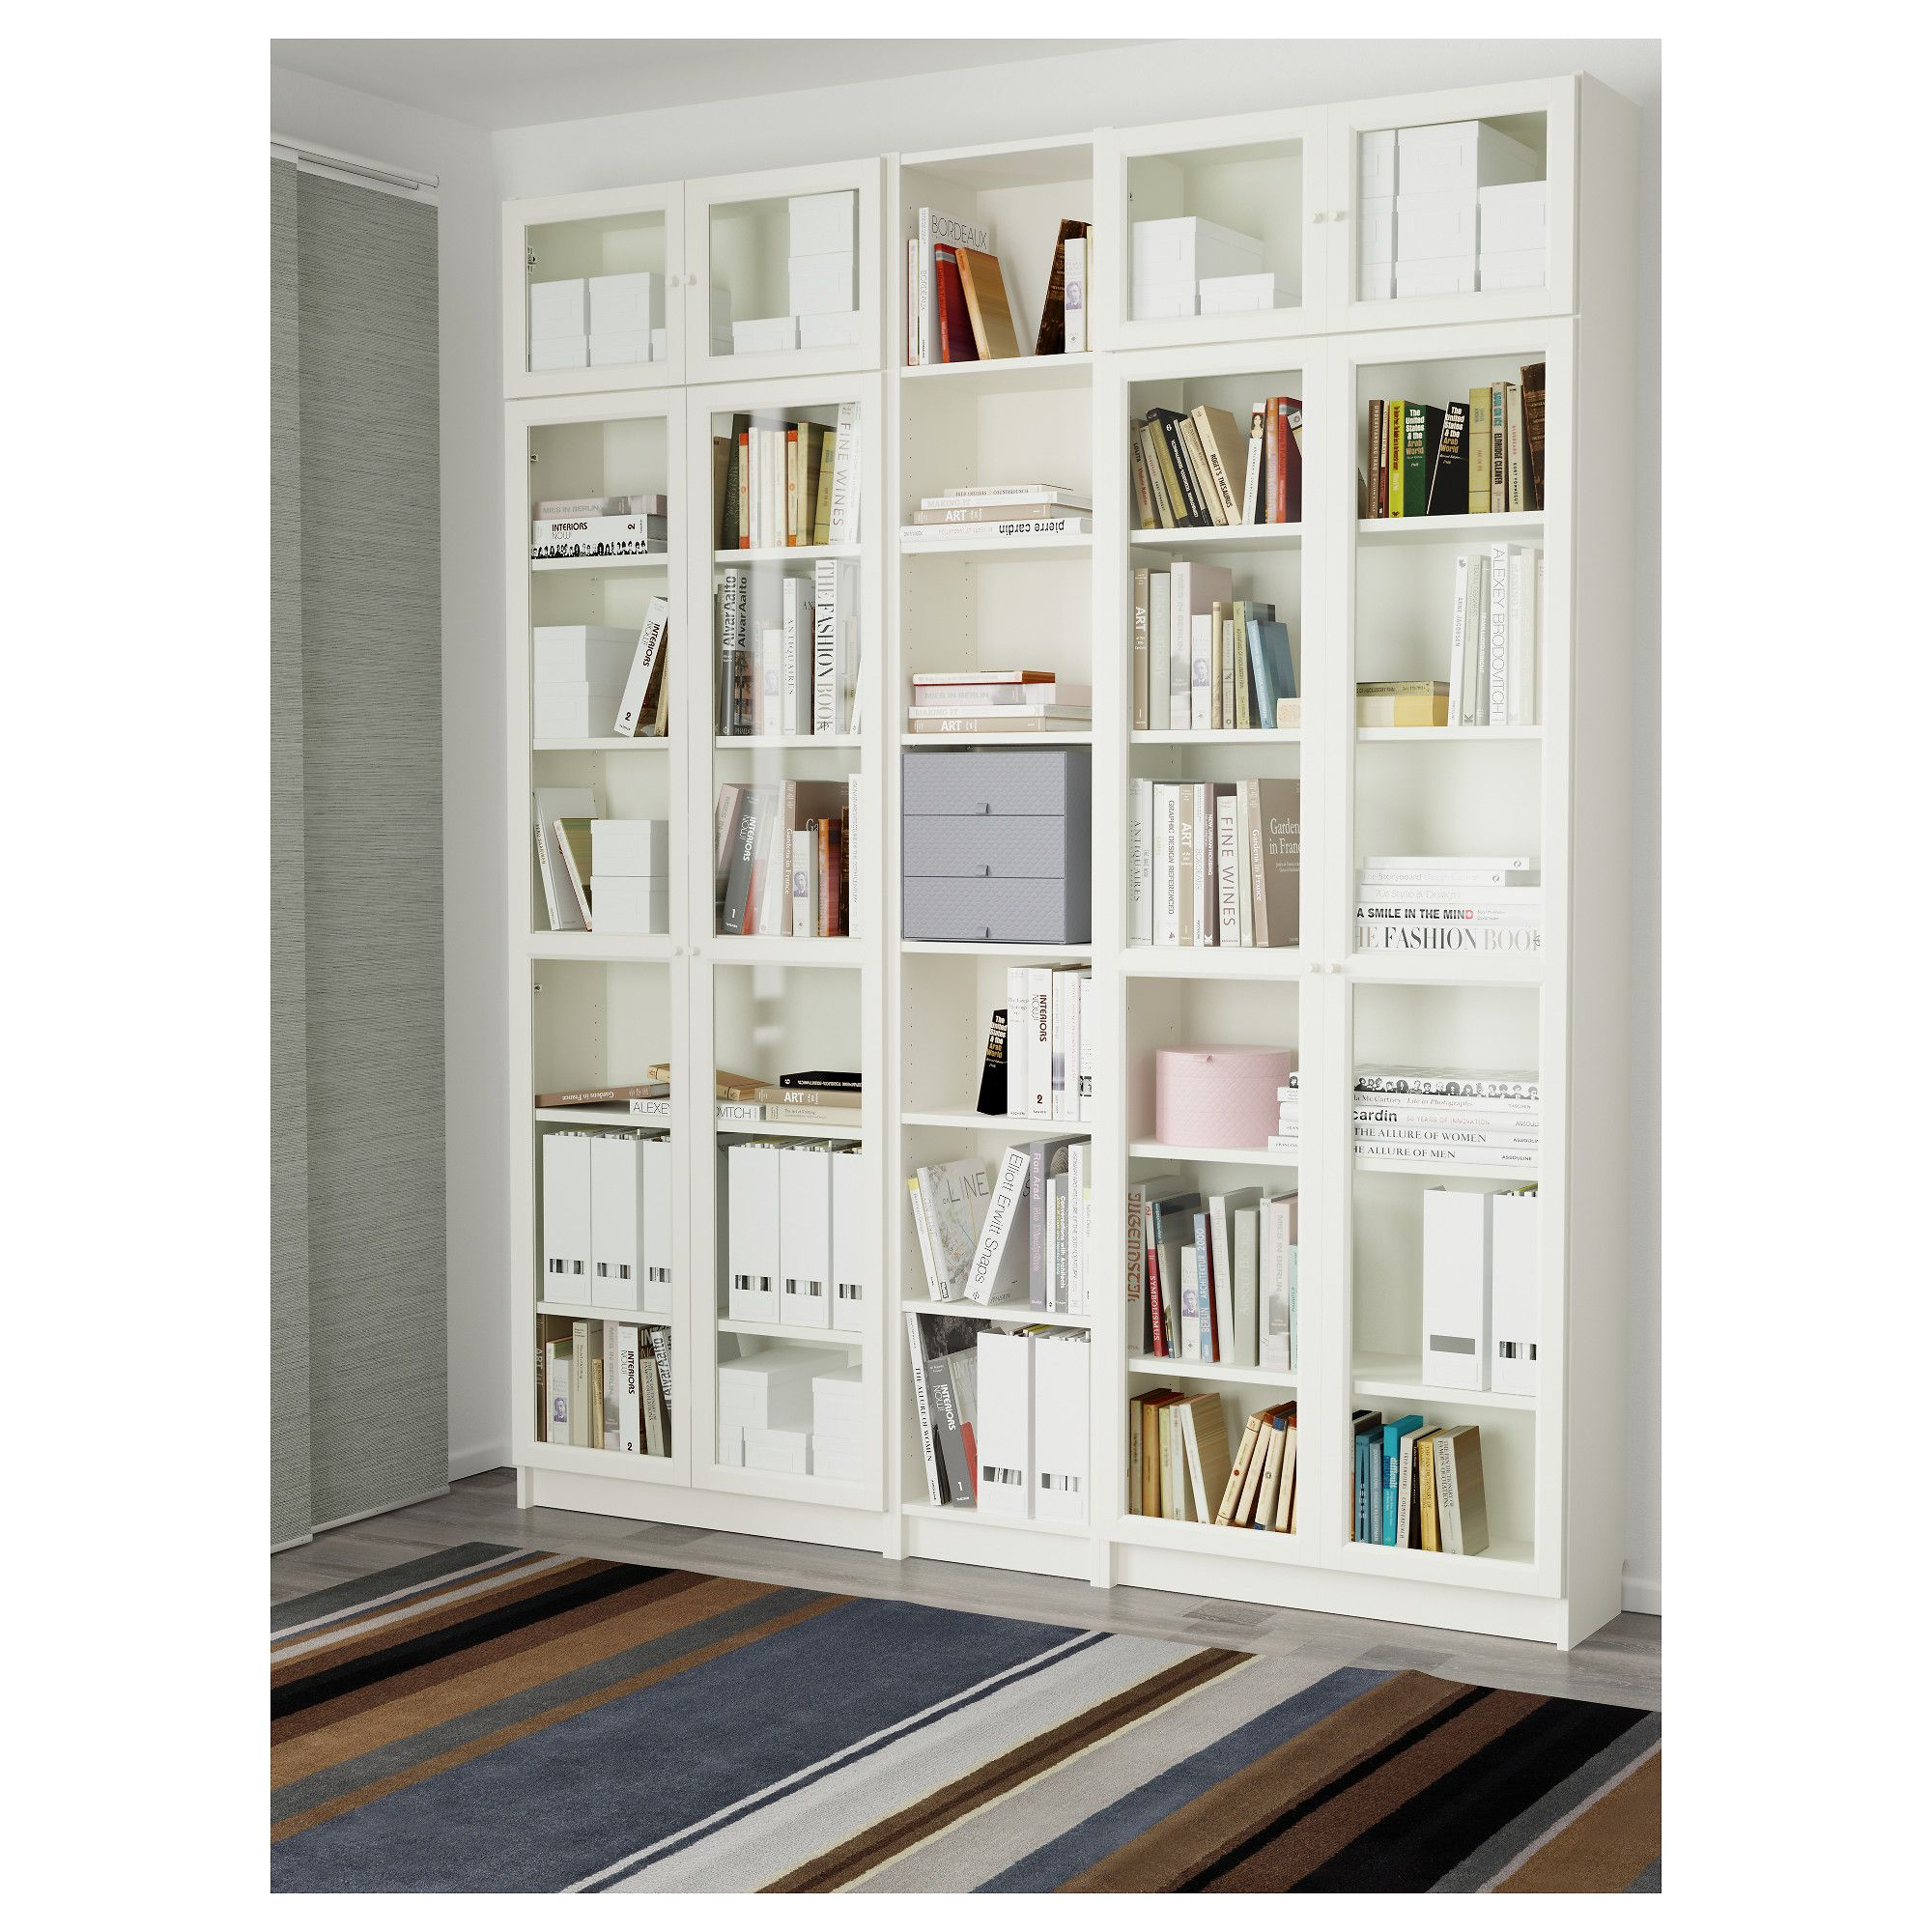 Ikea billy oxberg bookcase white i k e a l o v e for Billy libreria ikea